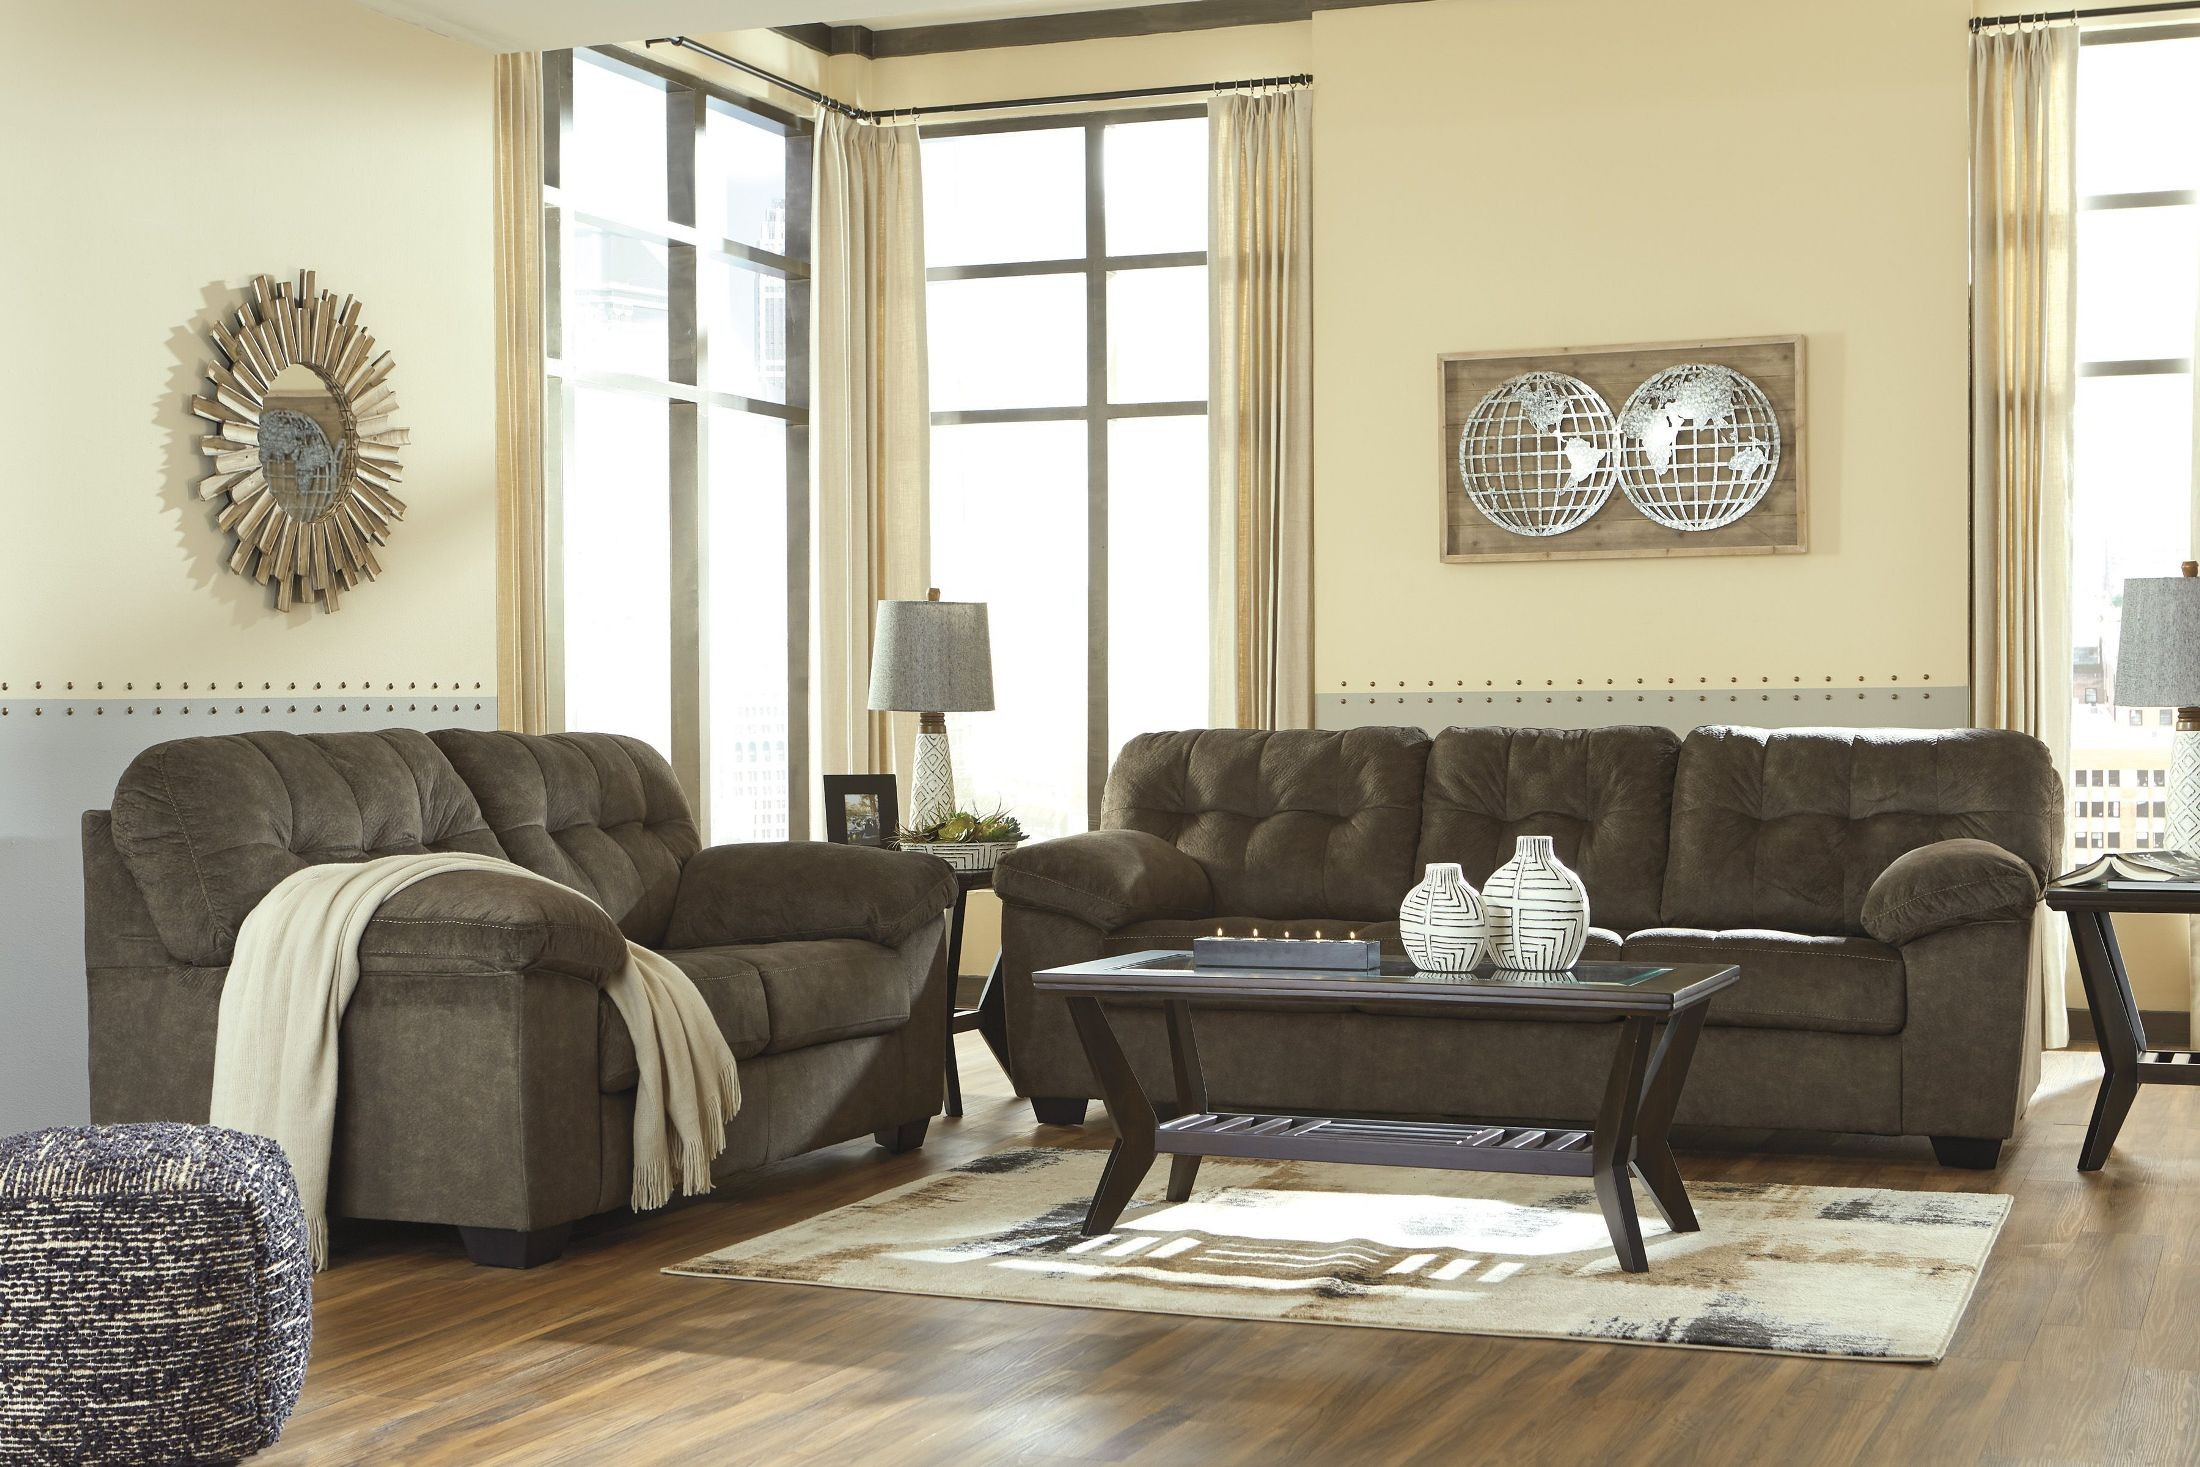 Lanquist 3 In 1 Occasional Table Set From Ashley T401 13 Coleman Furniture